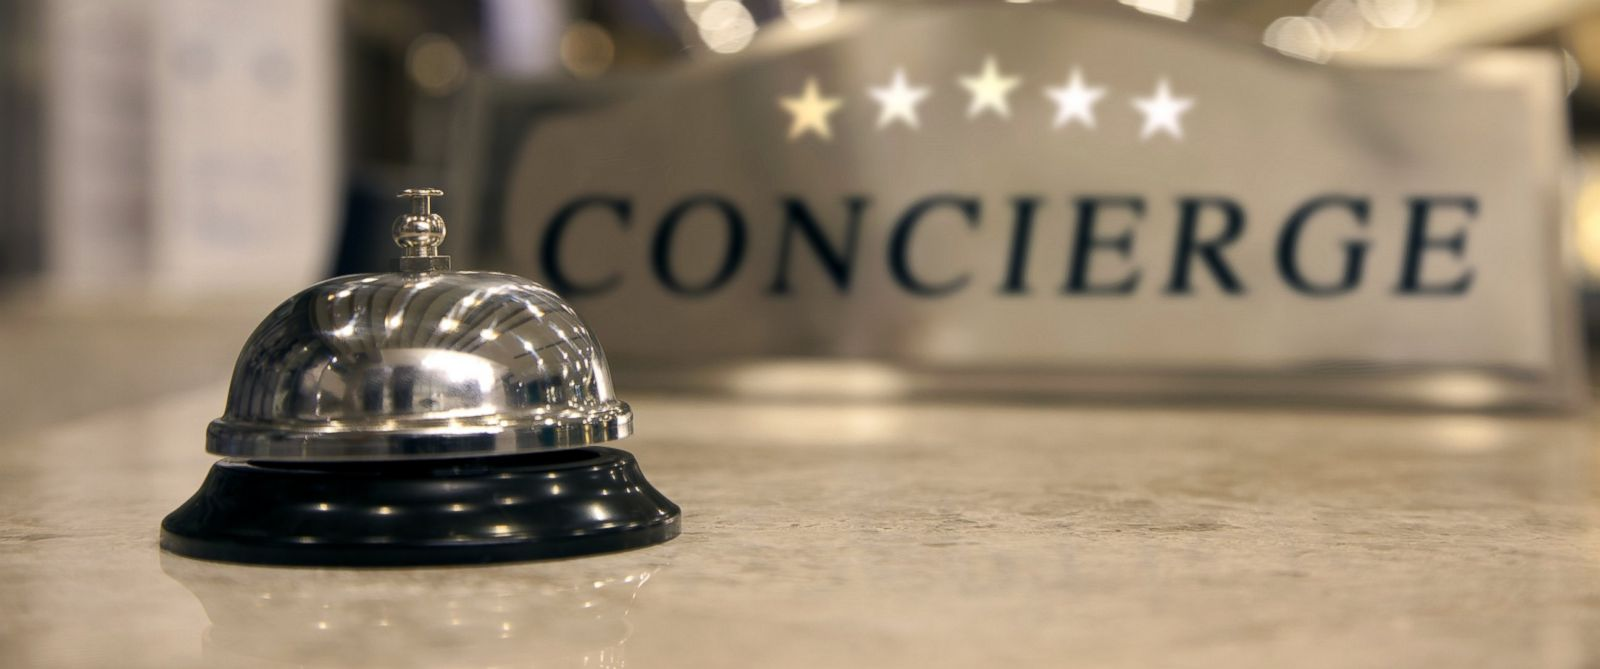 PHOTO: Concierge Bell